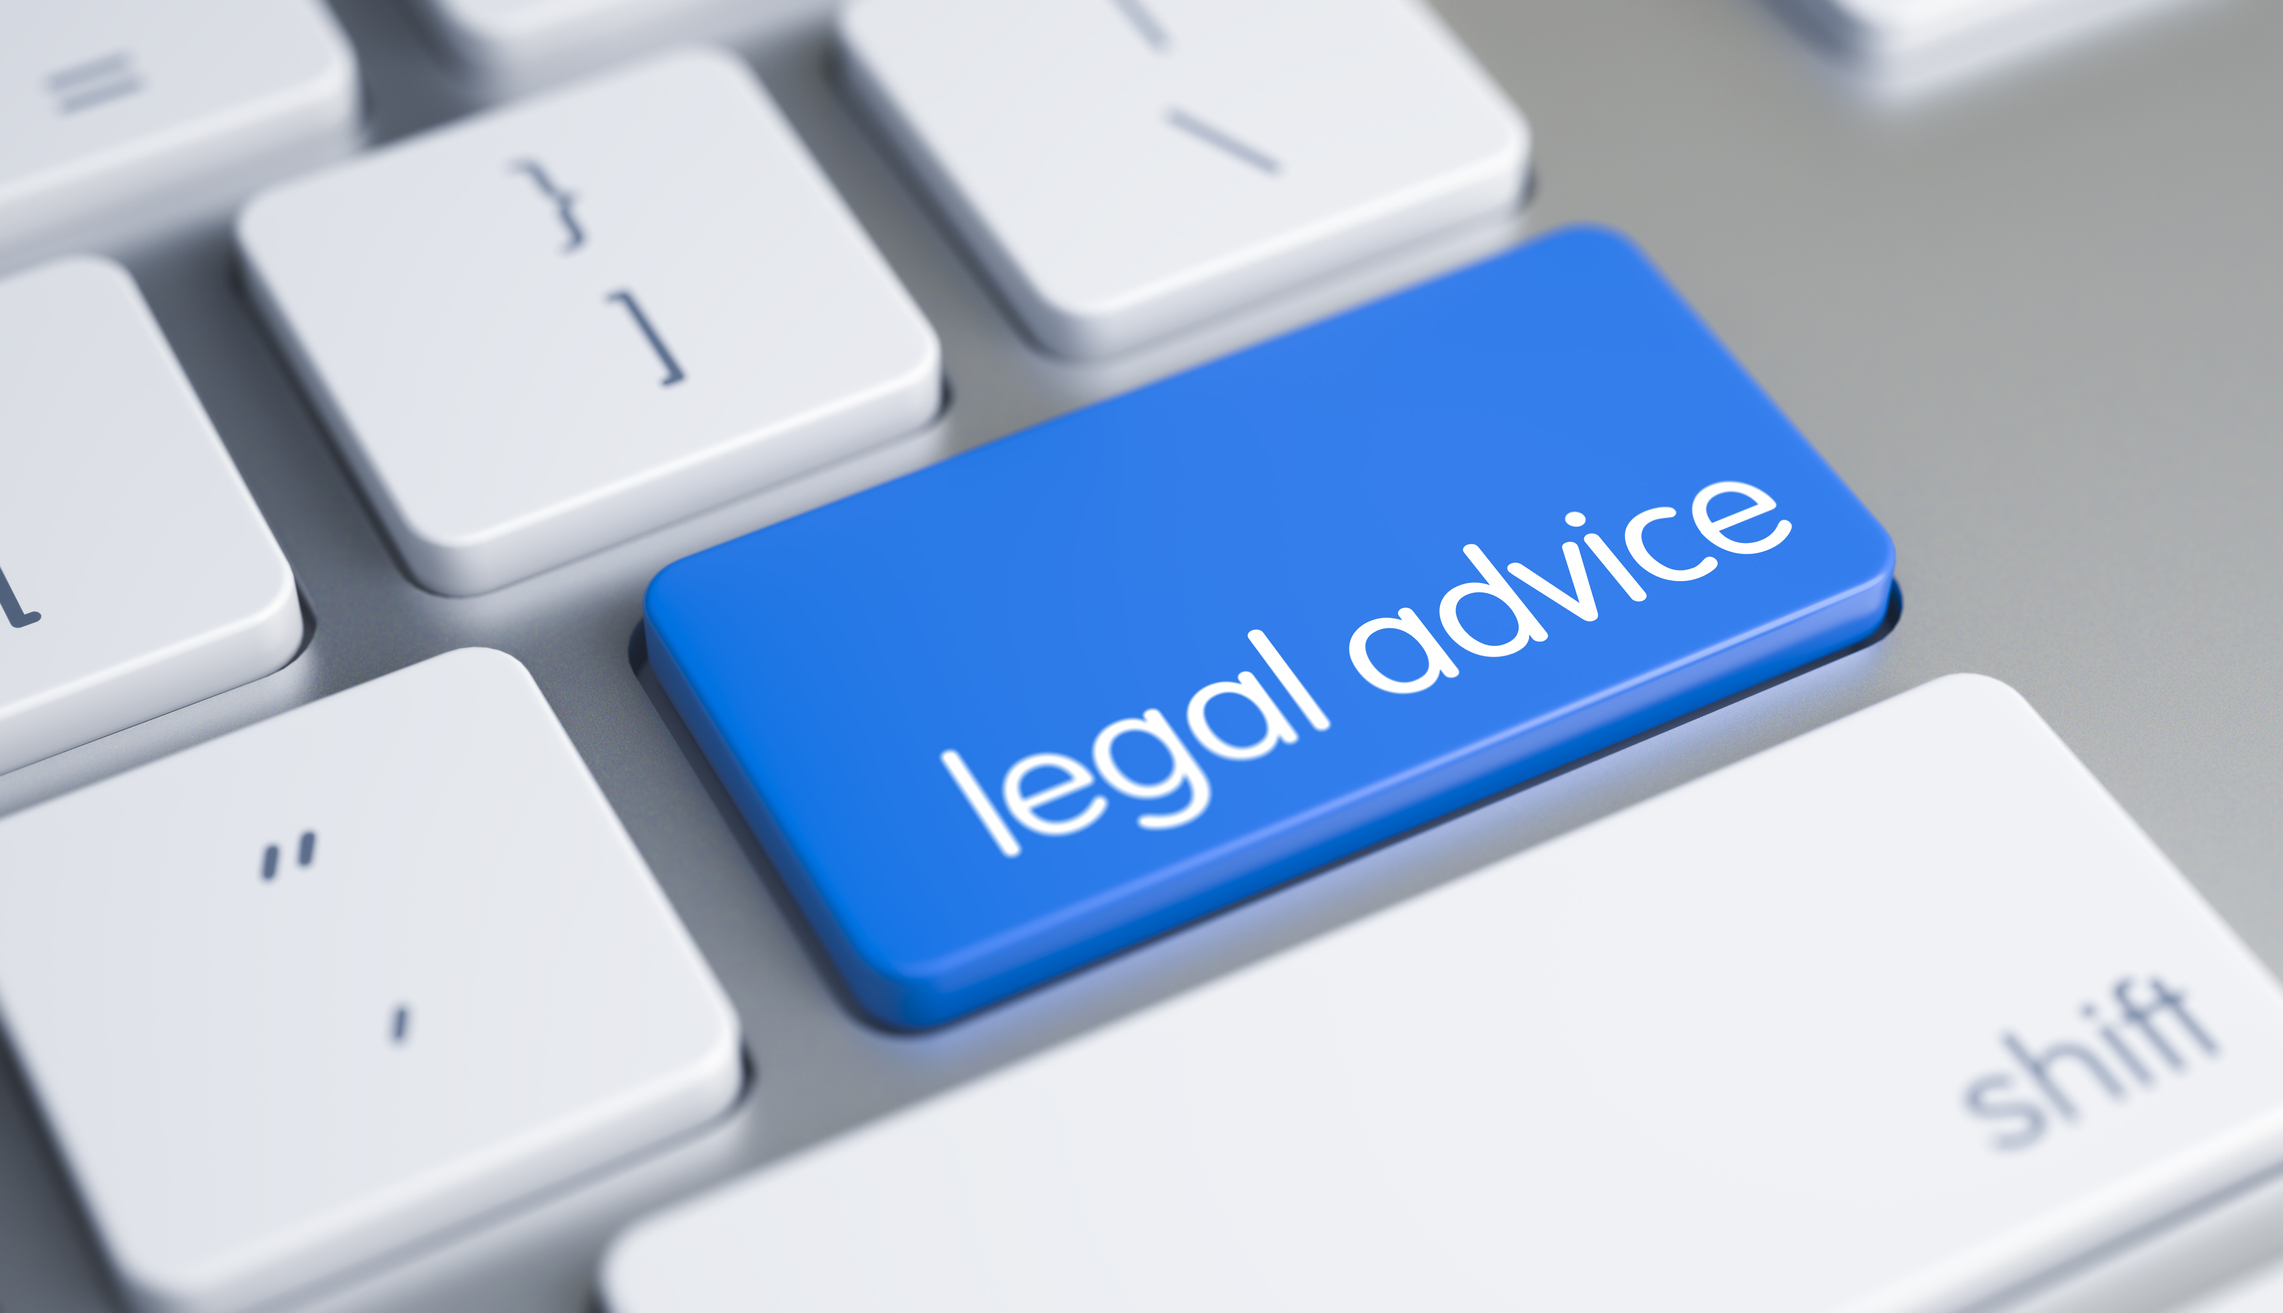 Online Service Concept: Legal Advice on the Metallic Keyboard Background. Online Service Concept with Blue Enter Keypad on the Modern Keyboard: Legal Advice. 3D Illustration.